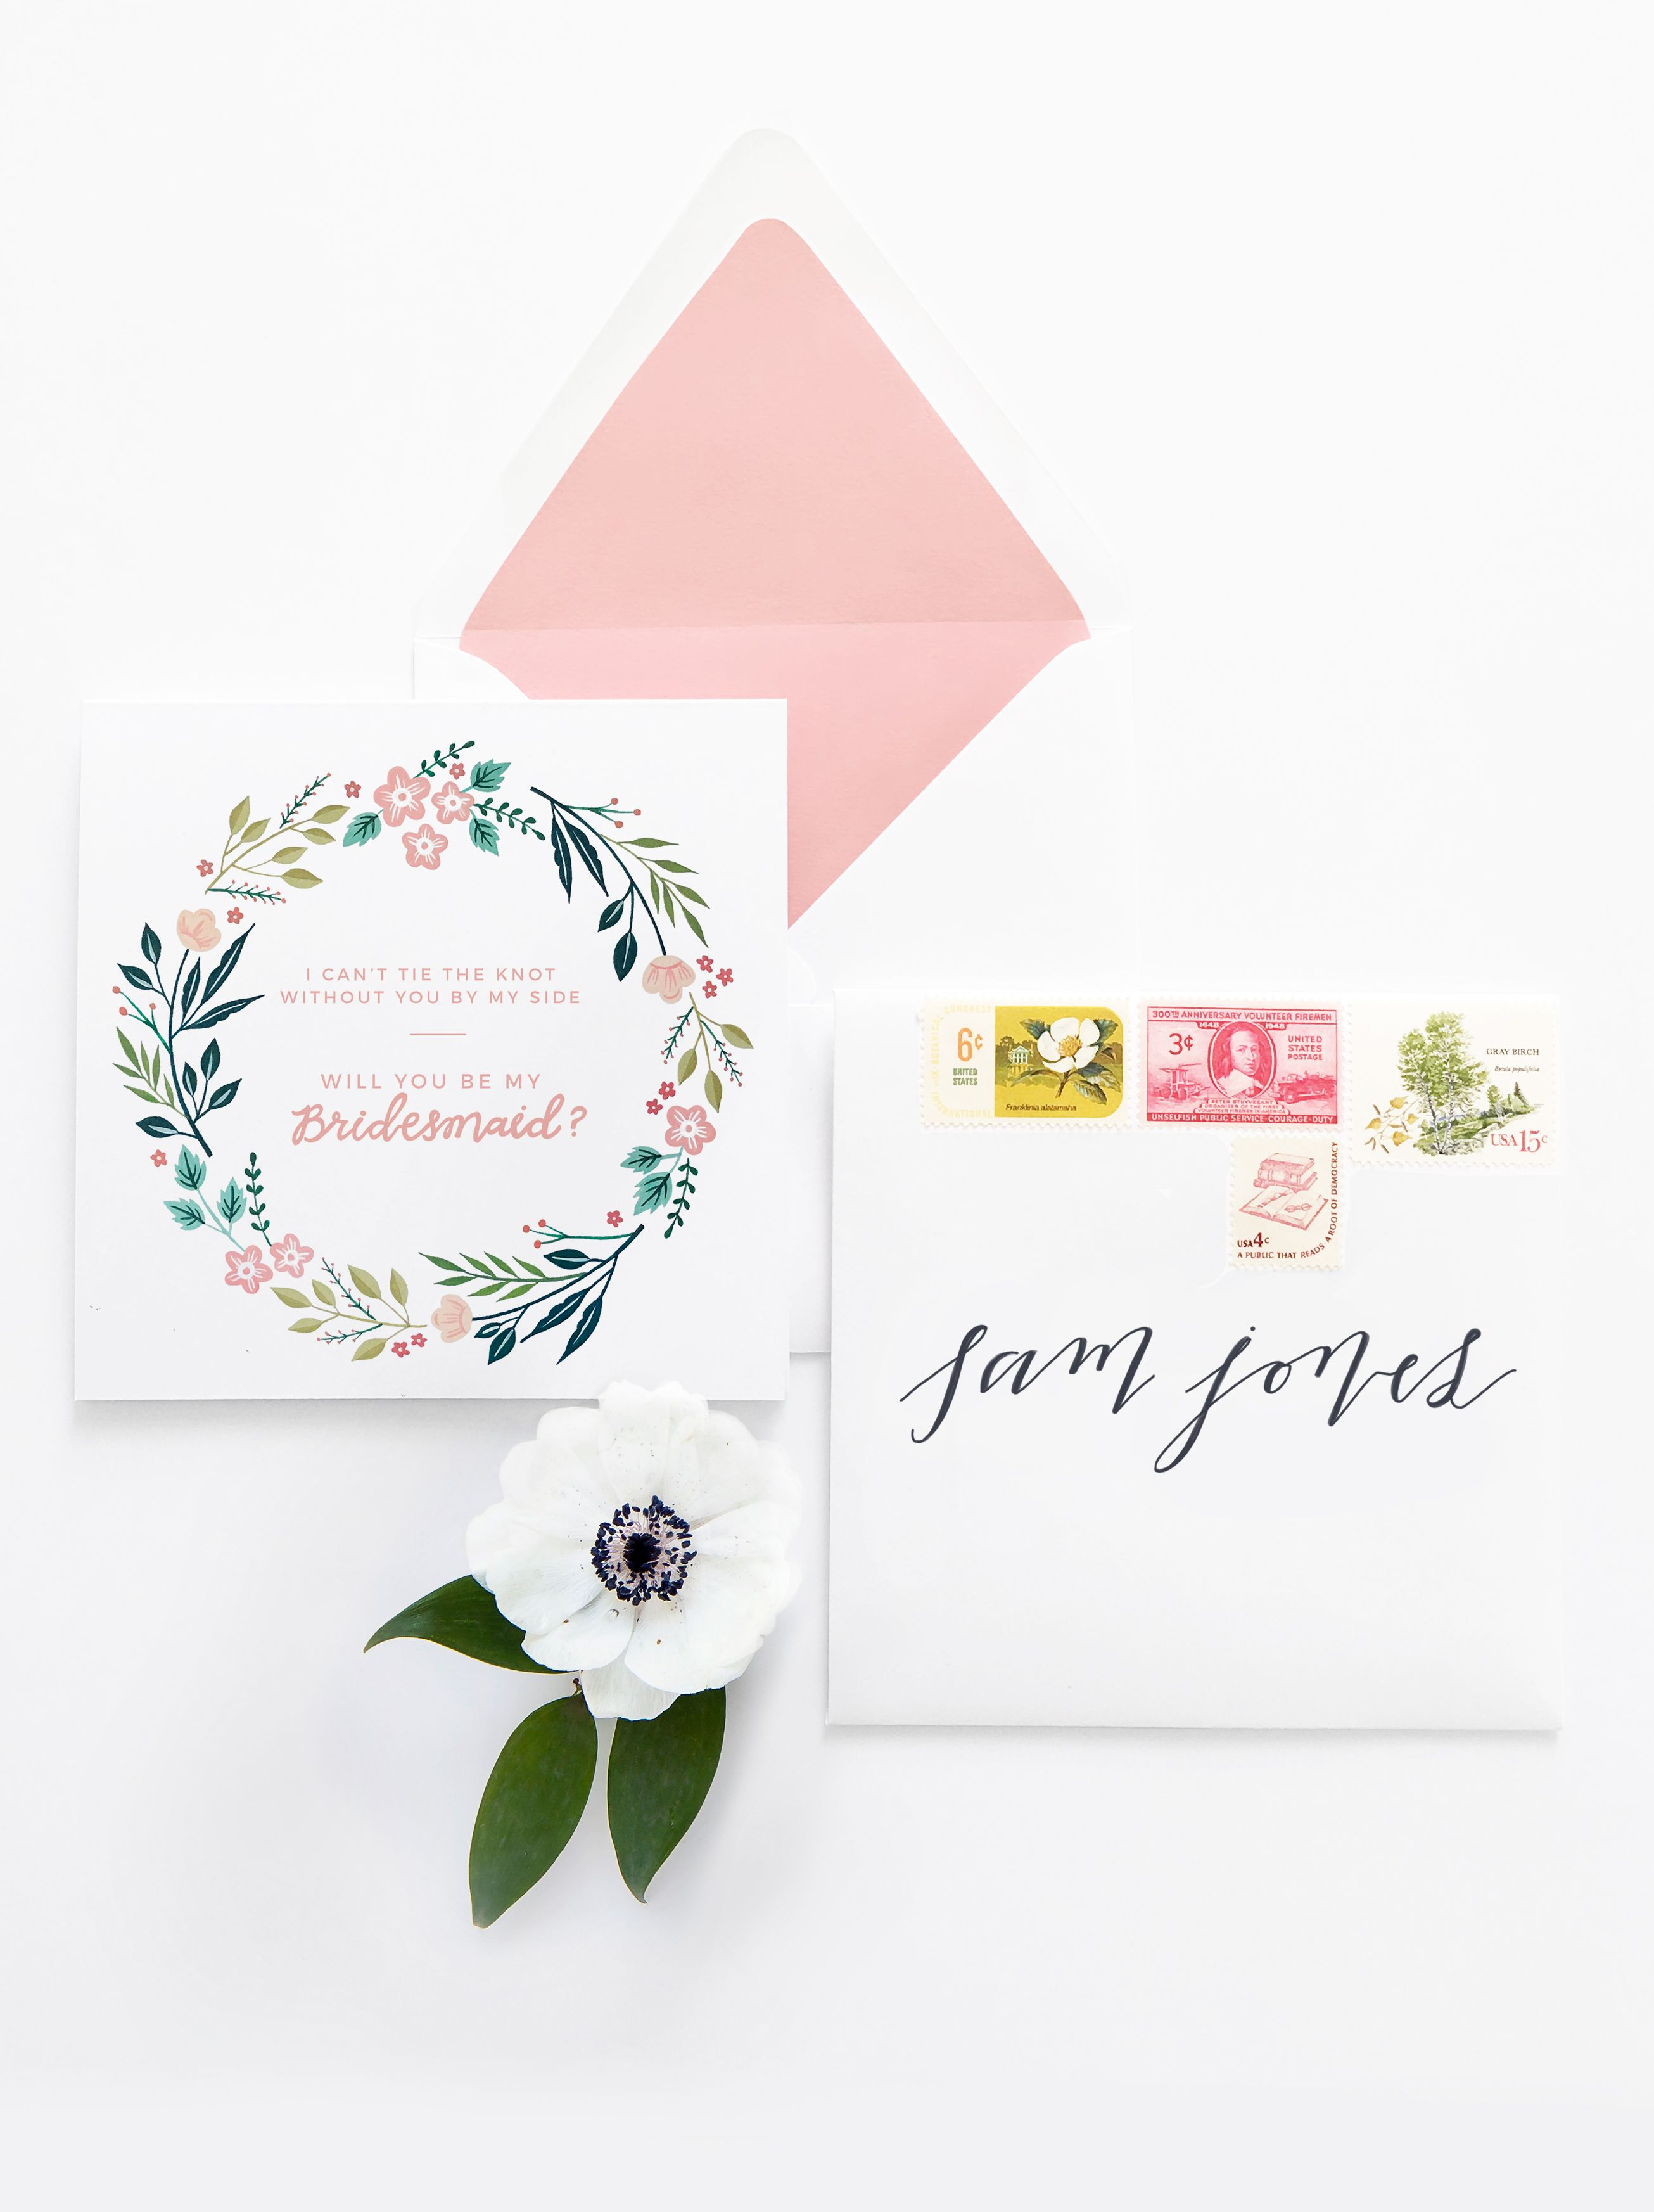 picture regarding Free Printable Bridesmaid Cards named Absolutely free printable - Will on your own be my bridesmaid card Stationery